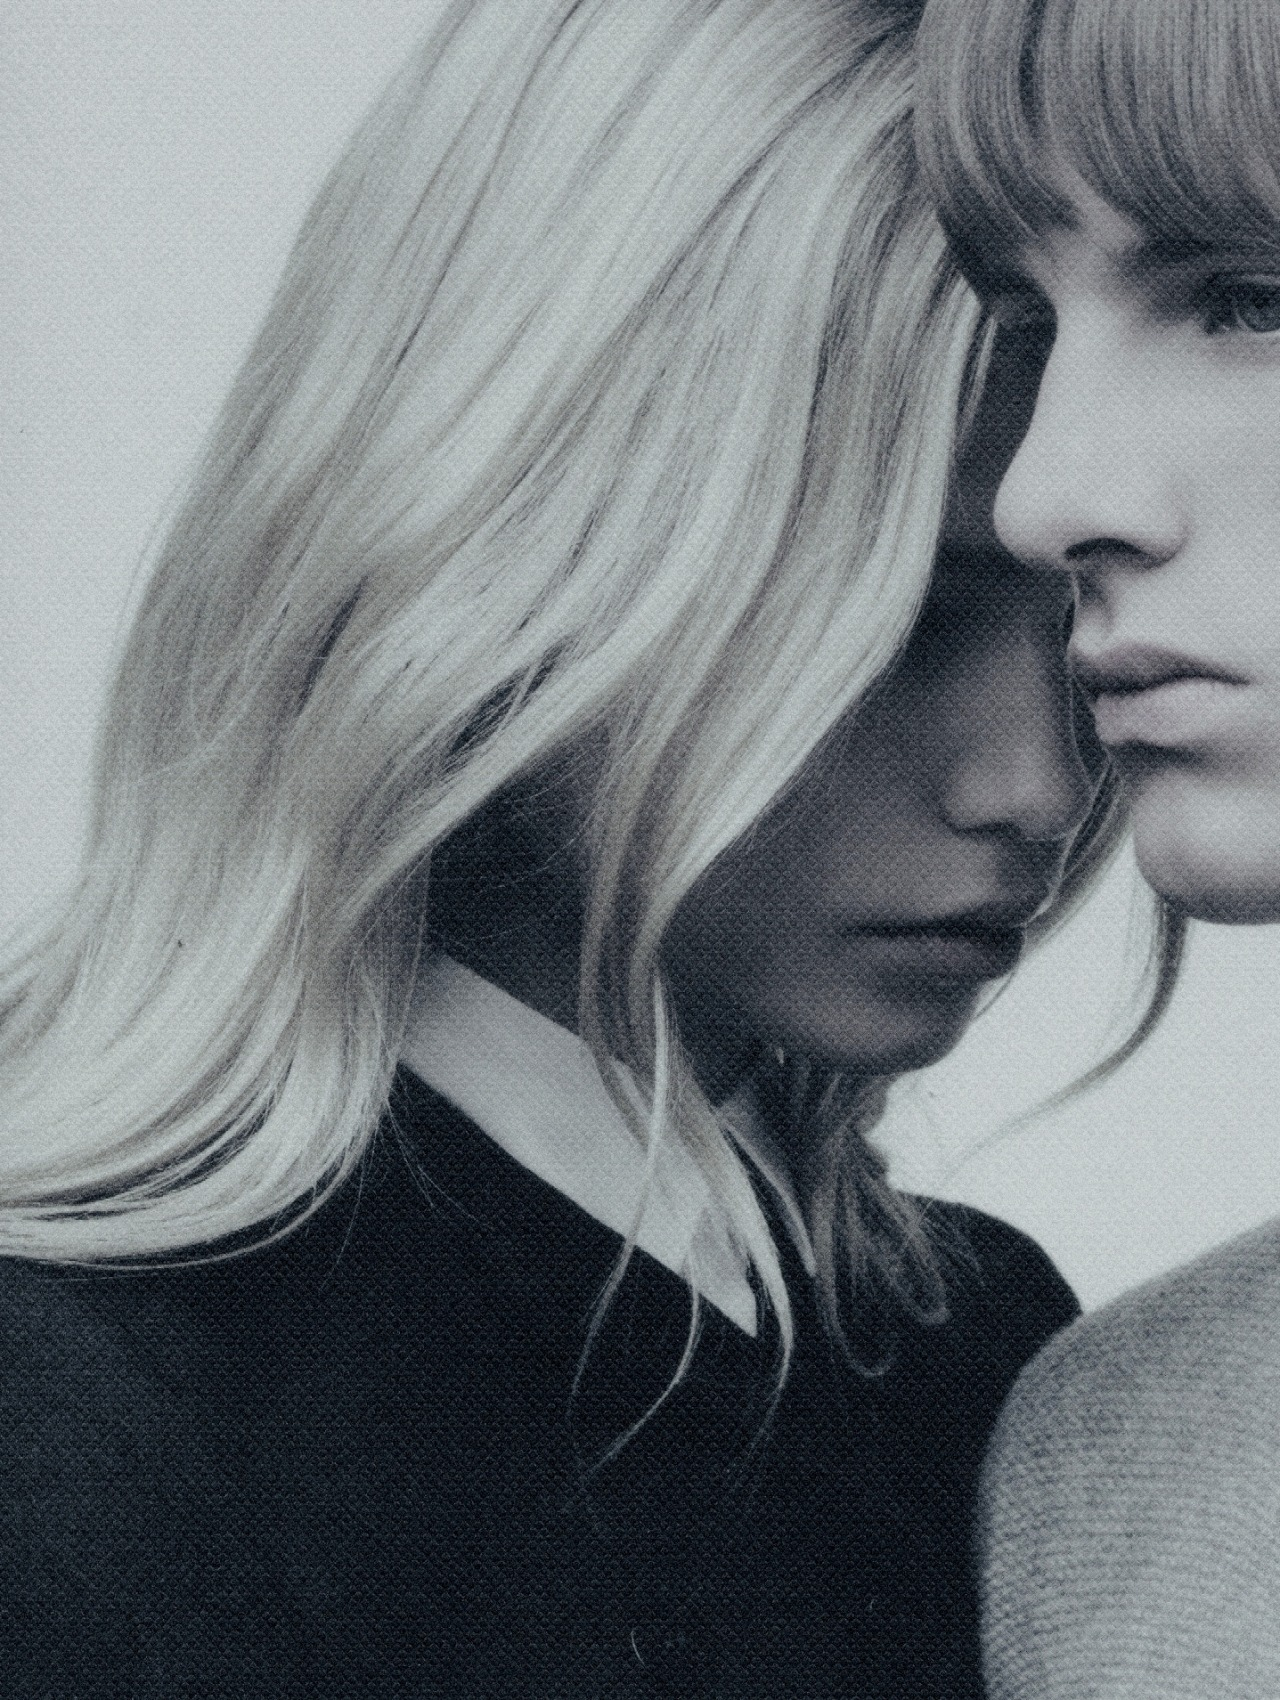 pradaphne:  Natasha Poly and Yannick Mantele photographed by Willy Vanderperre for COS Magazine Fall/Winter 2008.